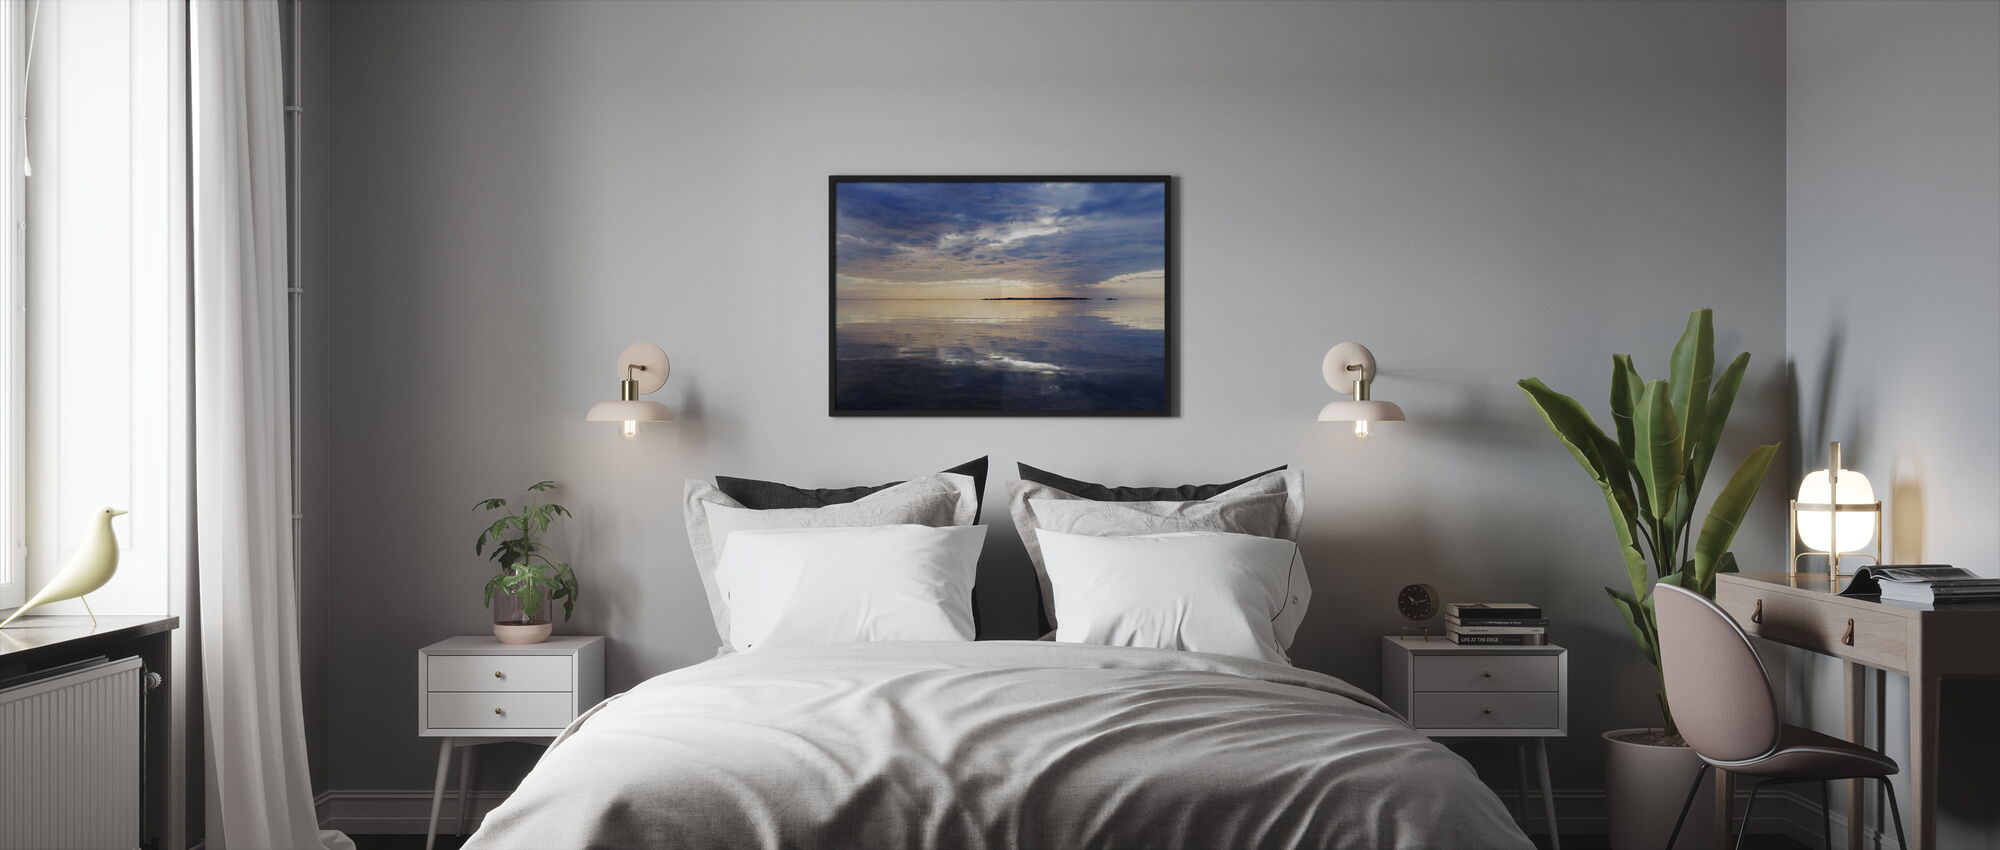 Sky Mirrored in Baltic Sea - Framed print - Bedroom